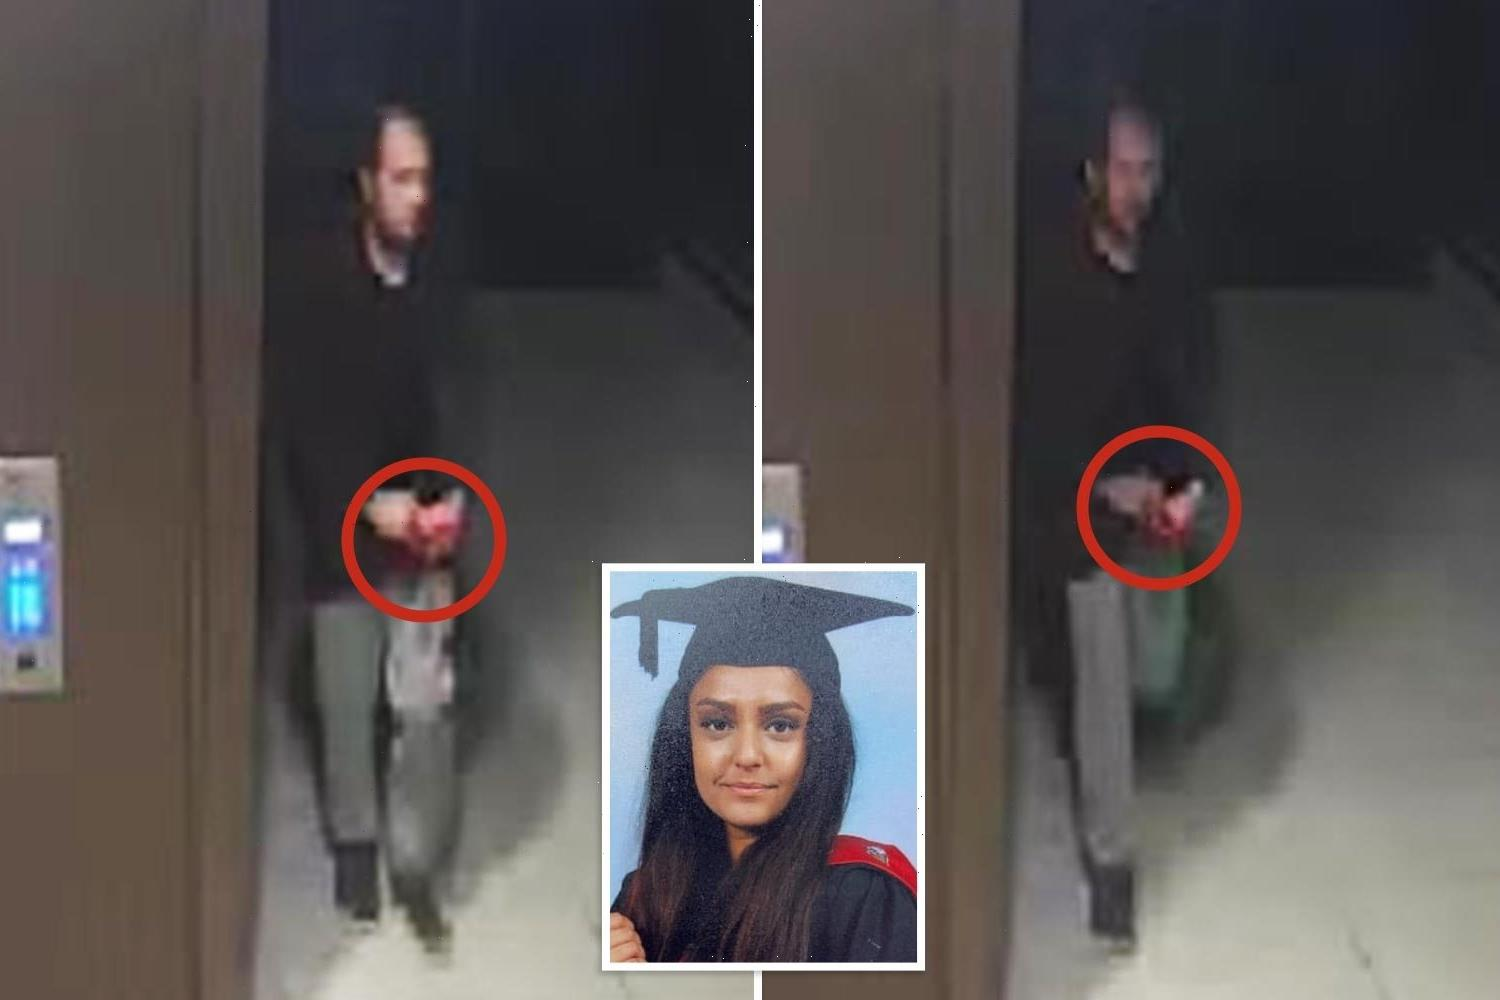 Sabina Nessa murder: Cops hunt man 'trying to hide red item up his sleeve' that could be weapon used to attack teacher